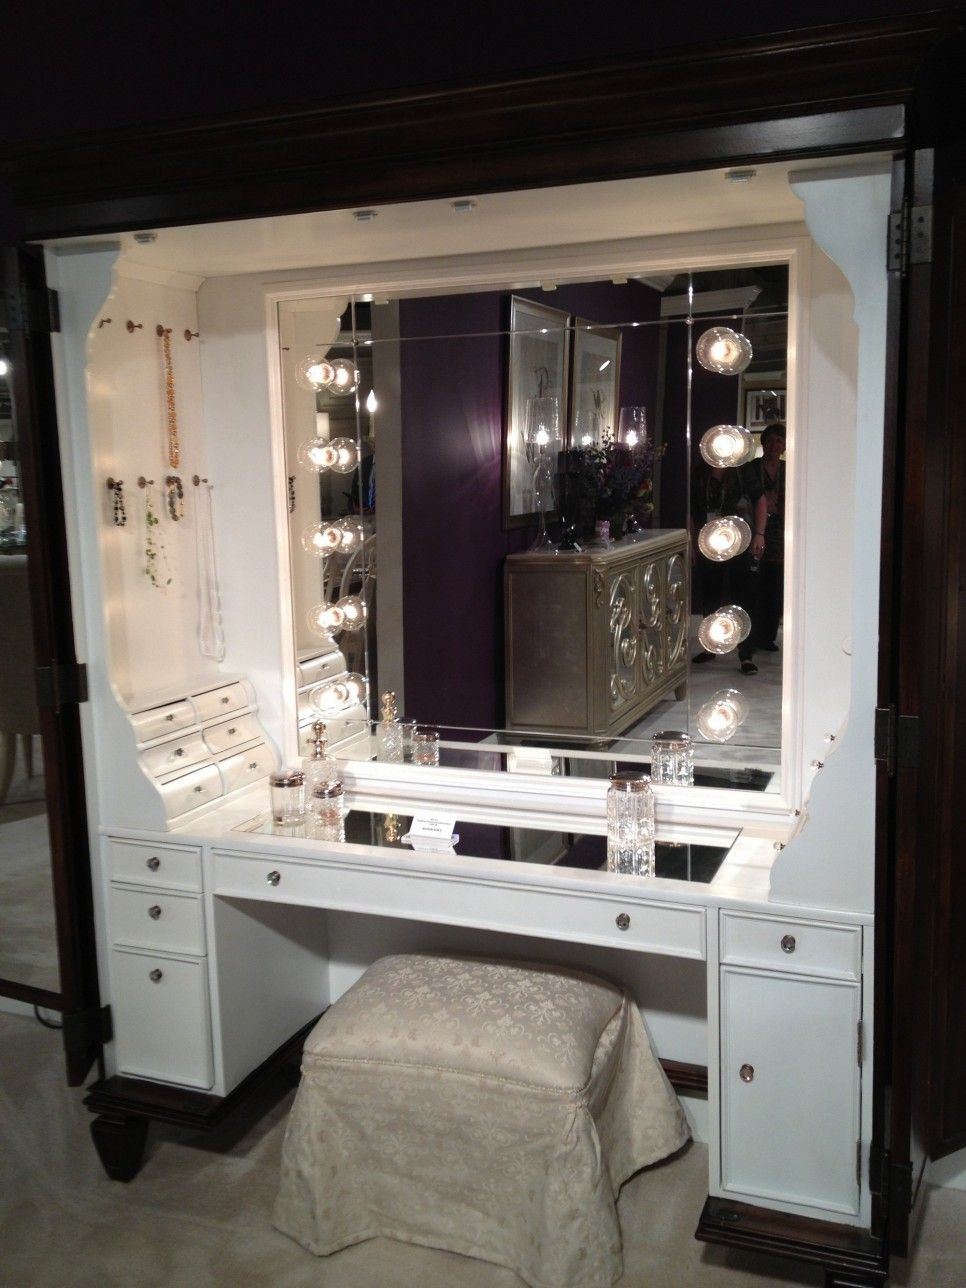 Furniture Large Modern Makeup Vanity Dressing Table With Glass Top And Drawer Plus Makeup Stora Diy Vanity Mirror Makeup Table Vanity Vanity Table With Lights